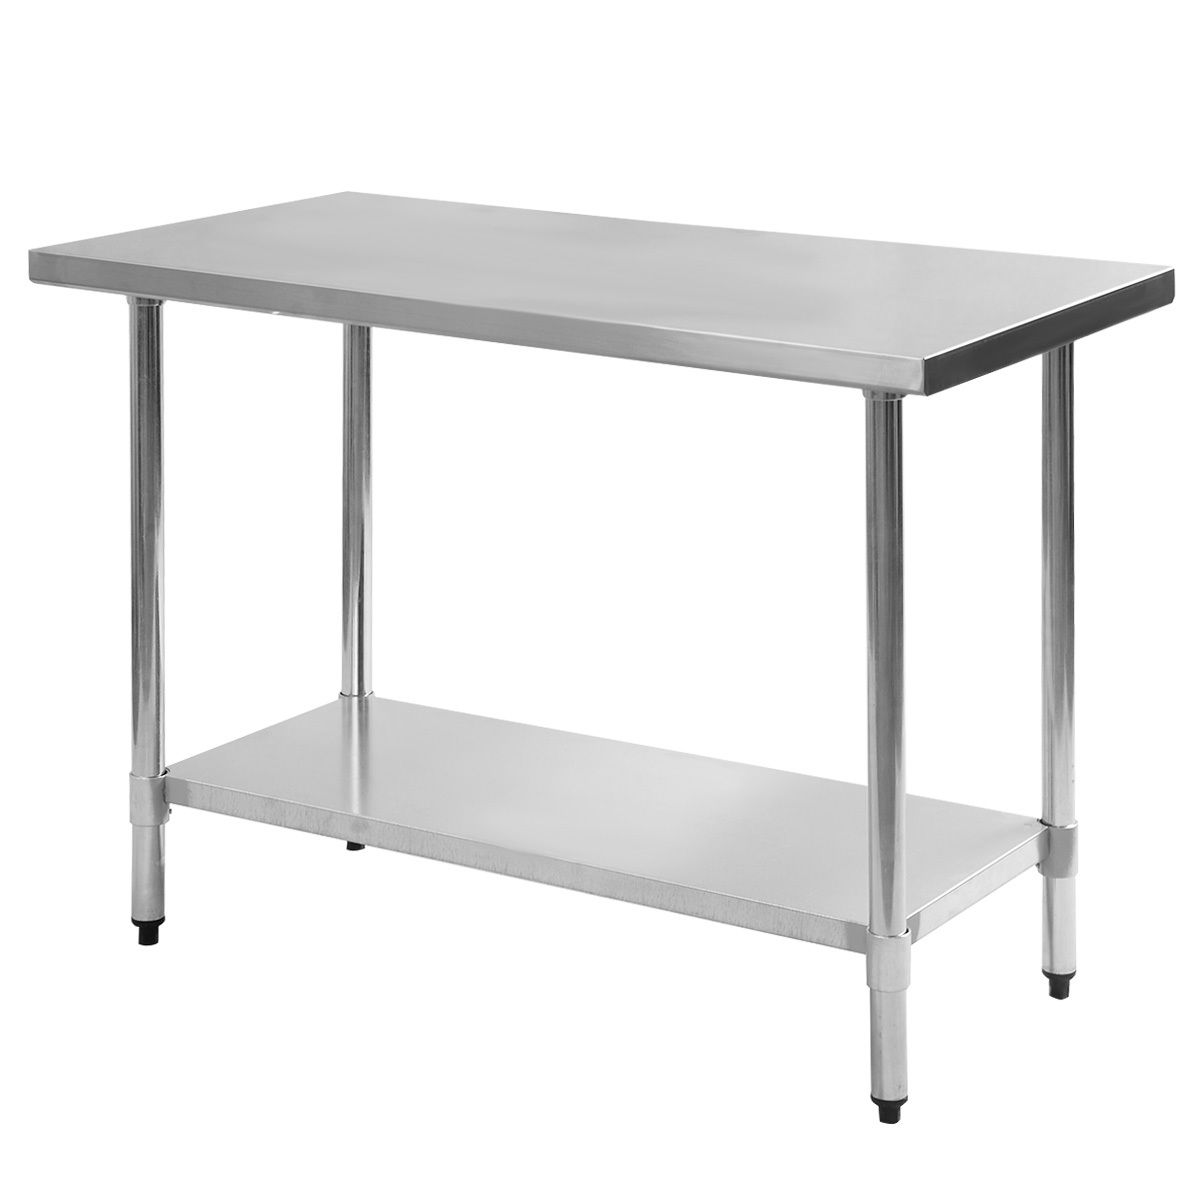 costway 24'' x 48'' stainless steel work prep table commercial